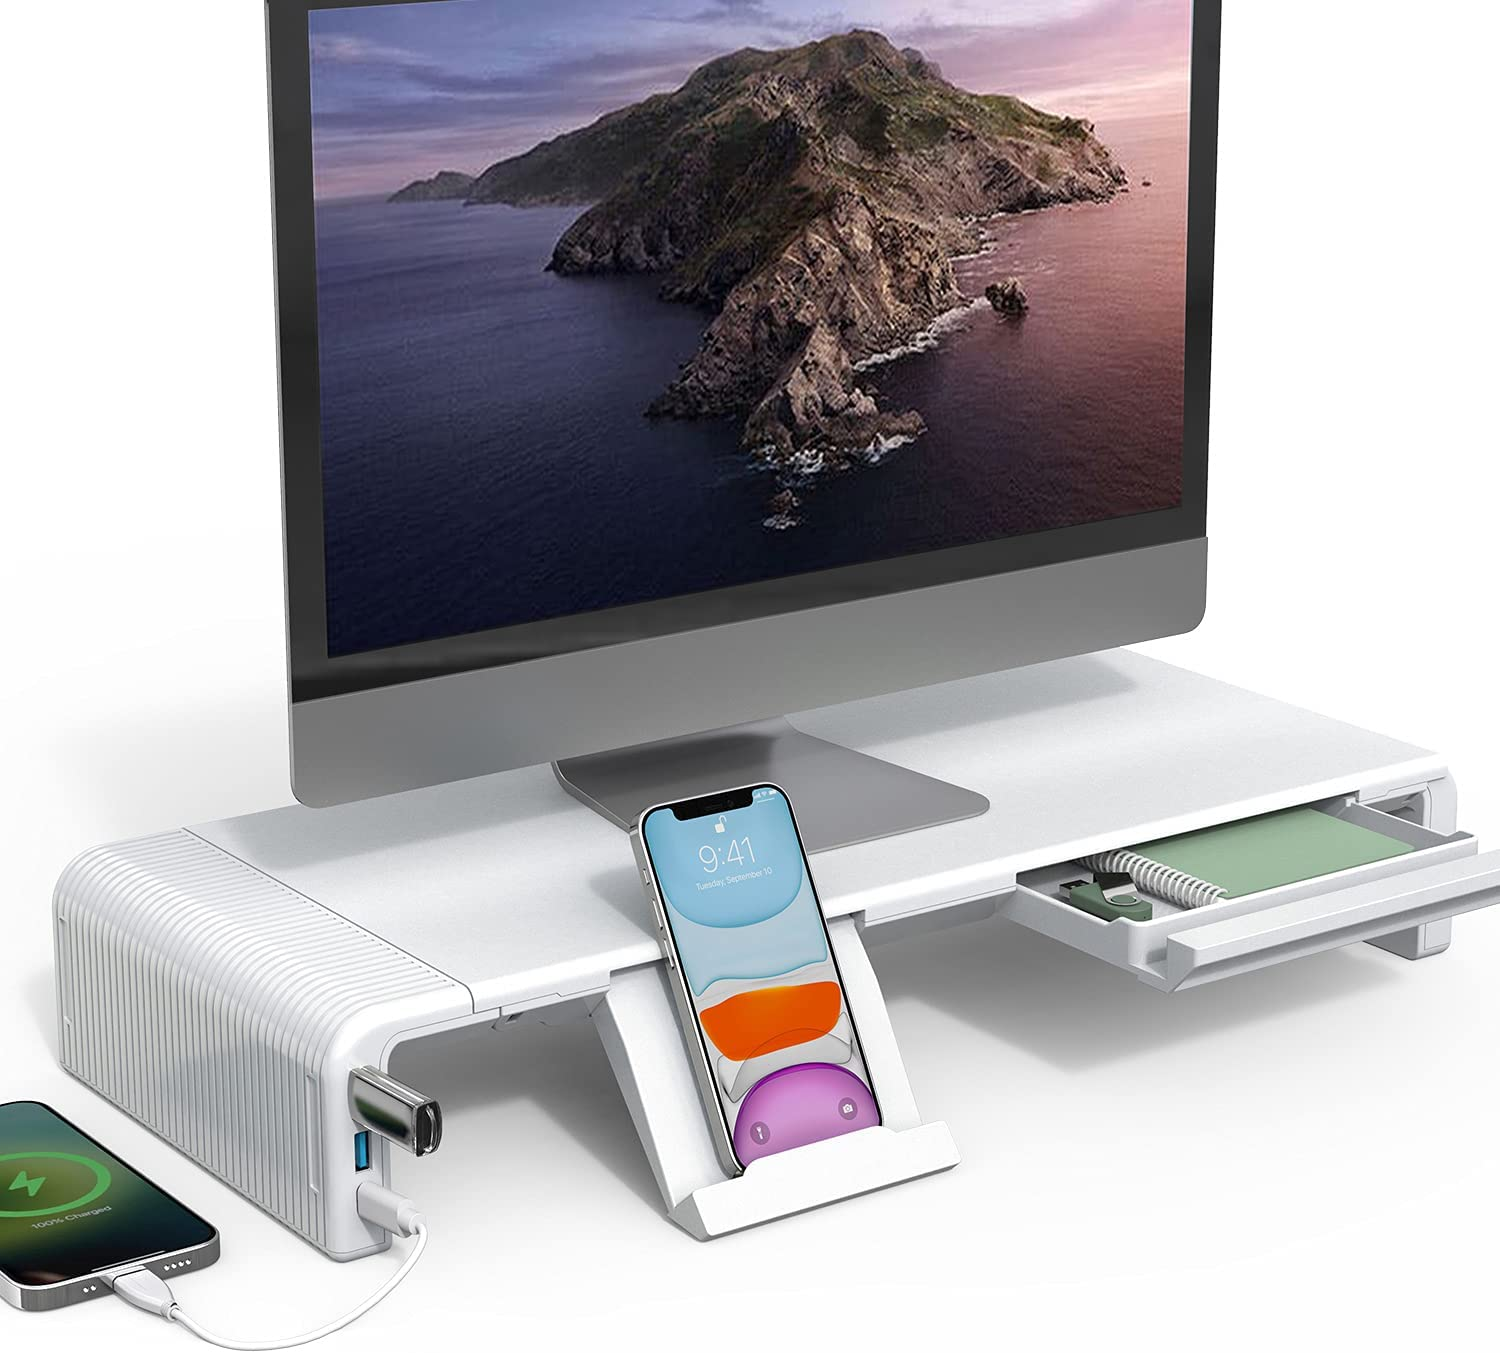 Adjustable Monitor Stand,Computer Monitors Riser with USB 3.0 &Type C Ports, Support 24W Fast Charging and Transfer Data, for Desktop, Laptop, Computer, MacBook, Notebook, PC (White)